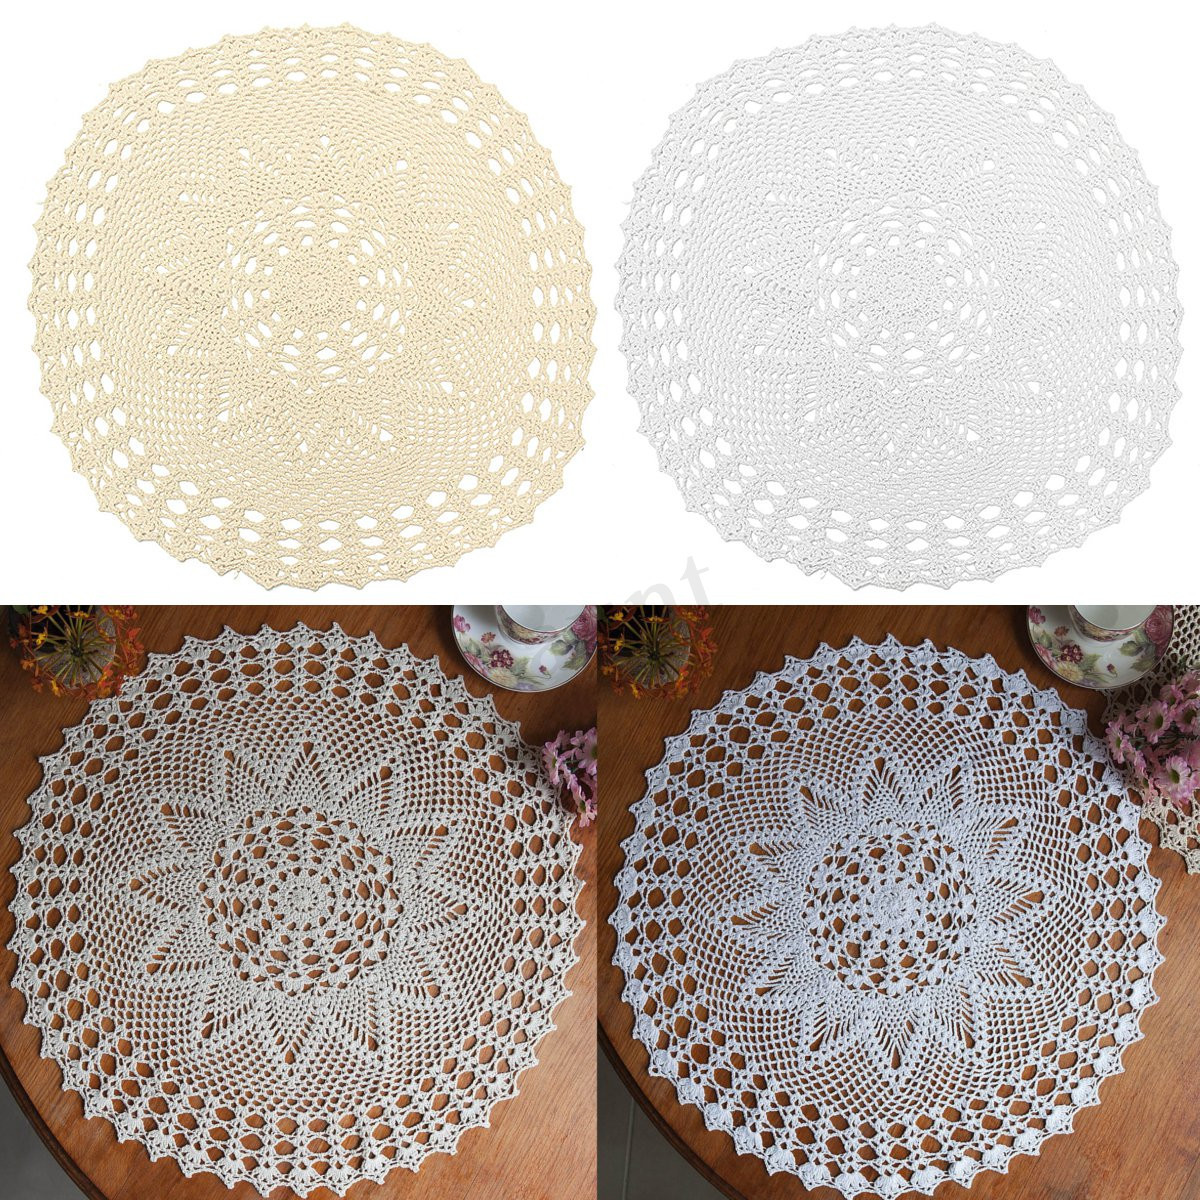 Doily Crafts Awesome Hand Crocheted Cotton Yarn Round Lace Doily Mat Vintage Of Contemporary 47 Photos Doily Crafts